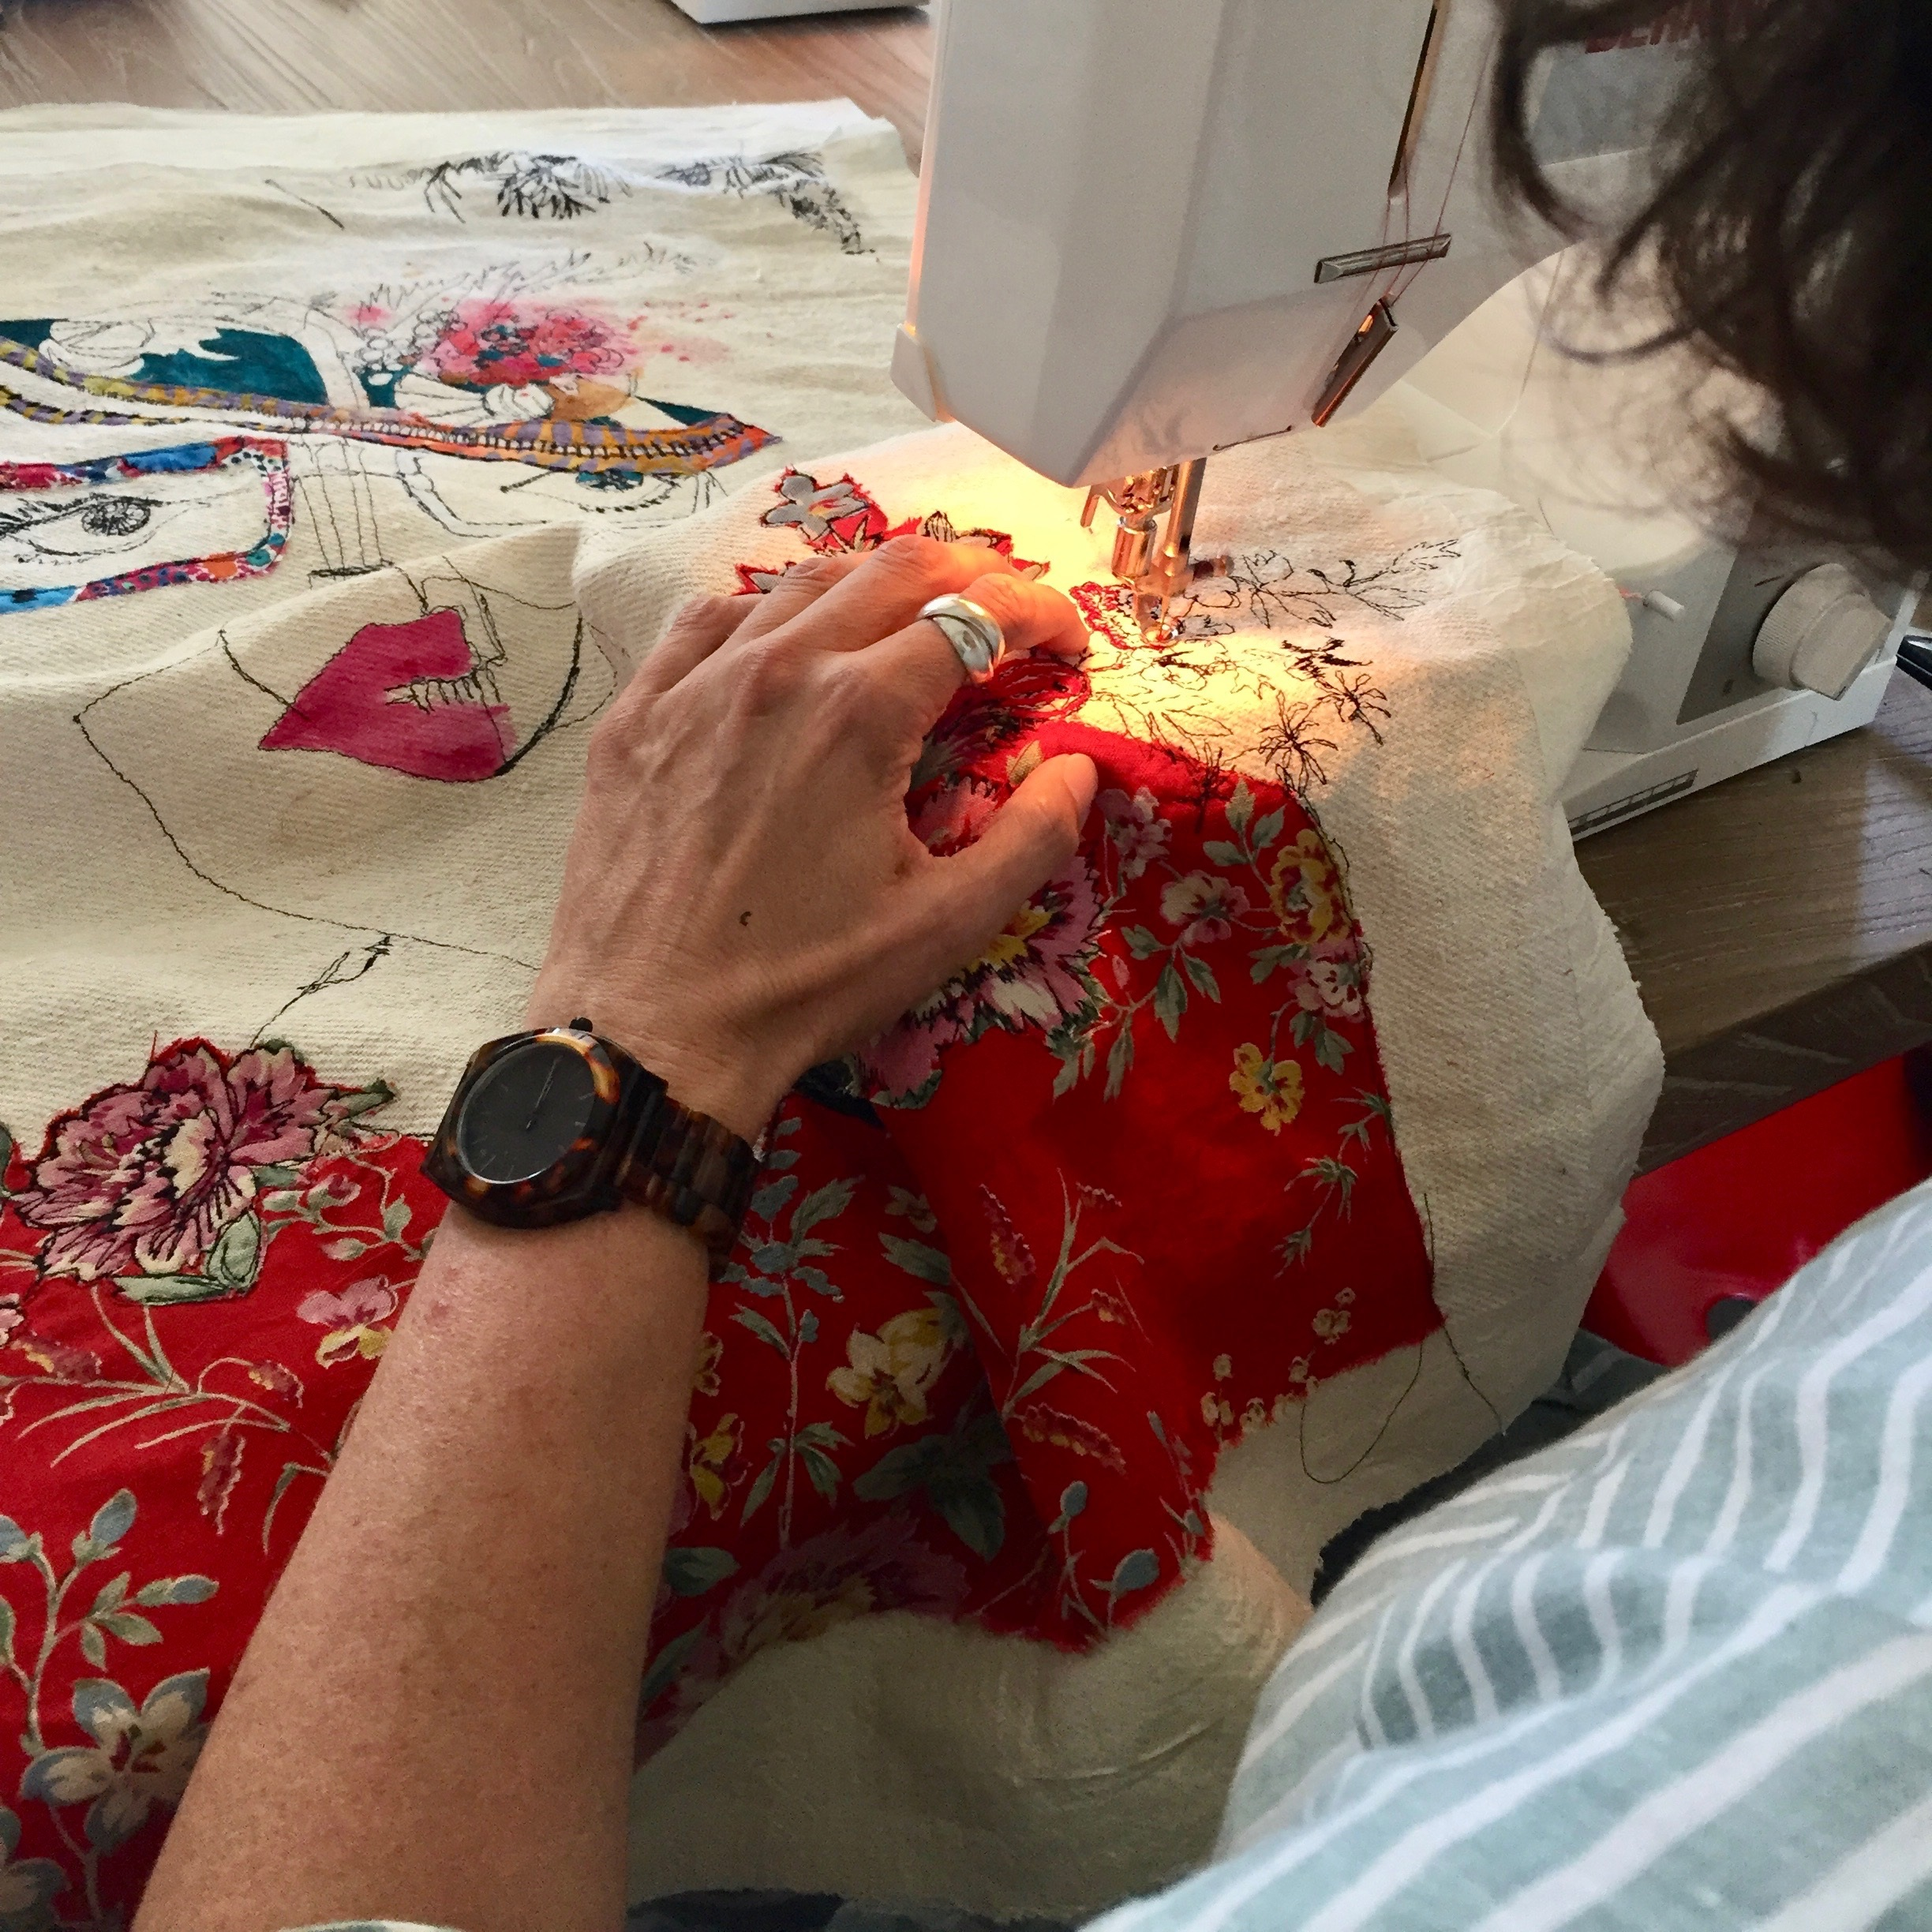 Contemporary Embroidered Portraits - with Lou Gardiner, August 2019